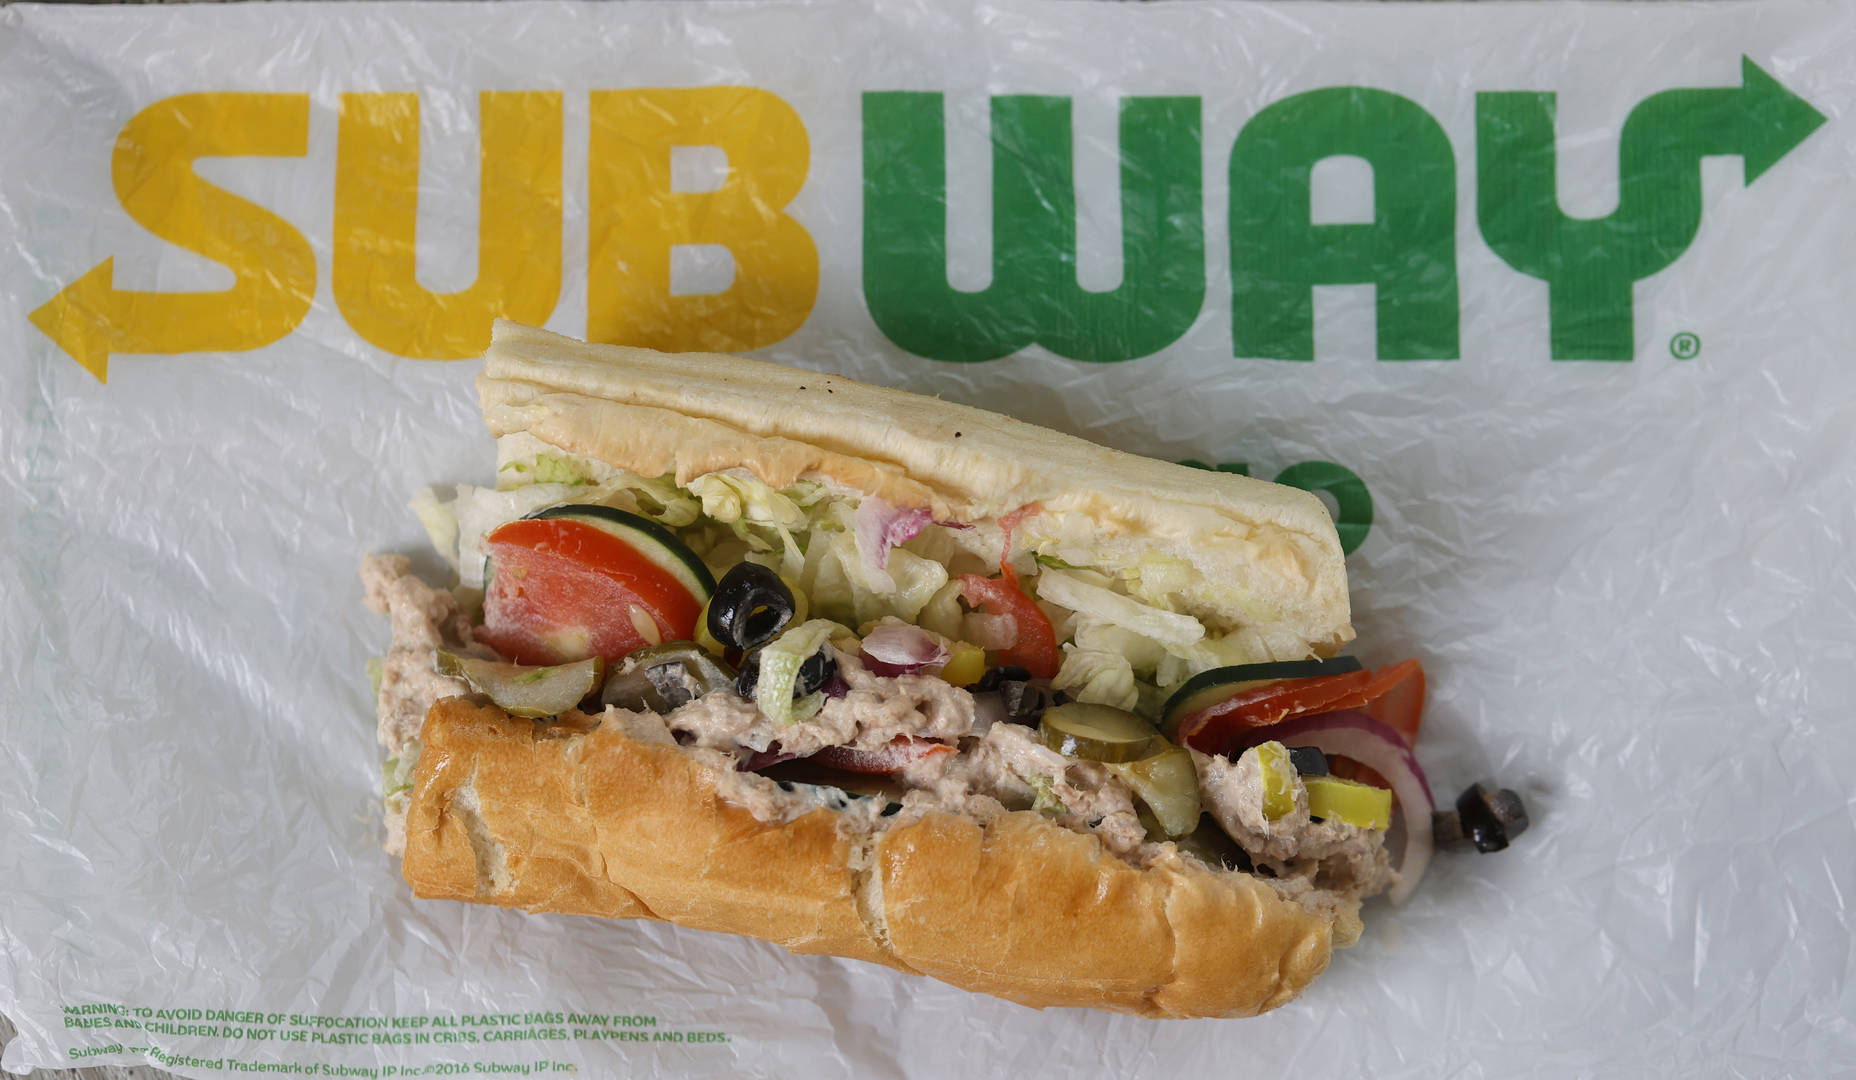 A tuna sandwich from Subway is displayed on June 22, 2021 in San Anselmo, California. A recent lab analysis of tuna used in Subway sandwiches commissioned by the New York Times did not reveal any tuna DNA in samples taken from Subway tuna sandwiches. The lab was unable to pinpoint a species in the tuna samples from three Los Angeles area Subway sandwich shops.